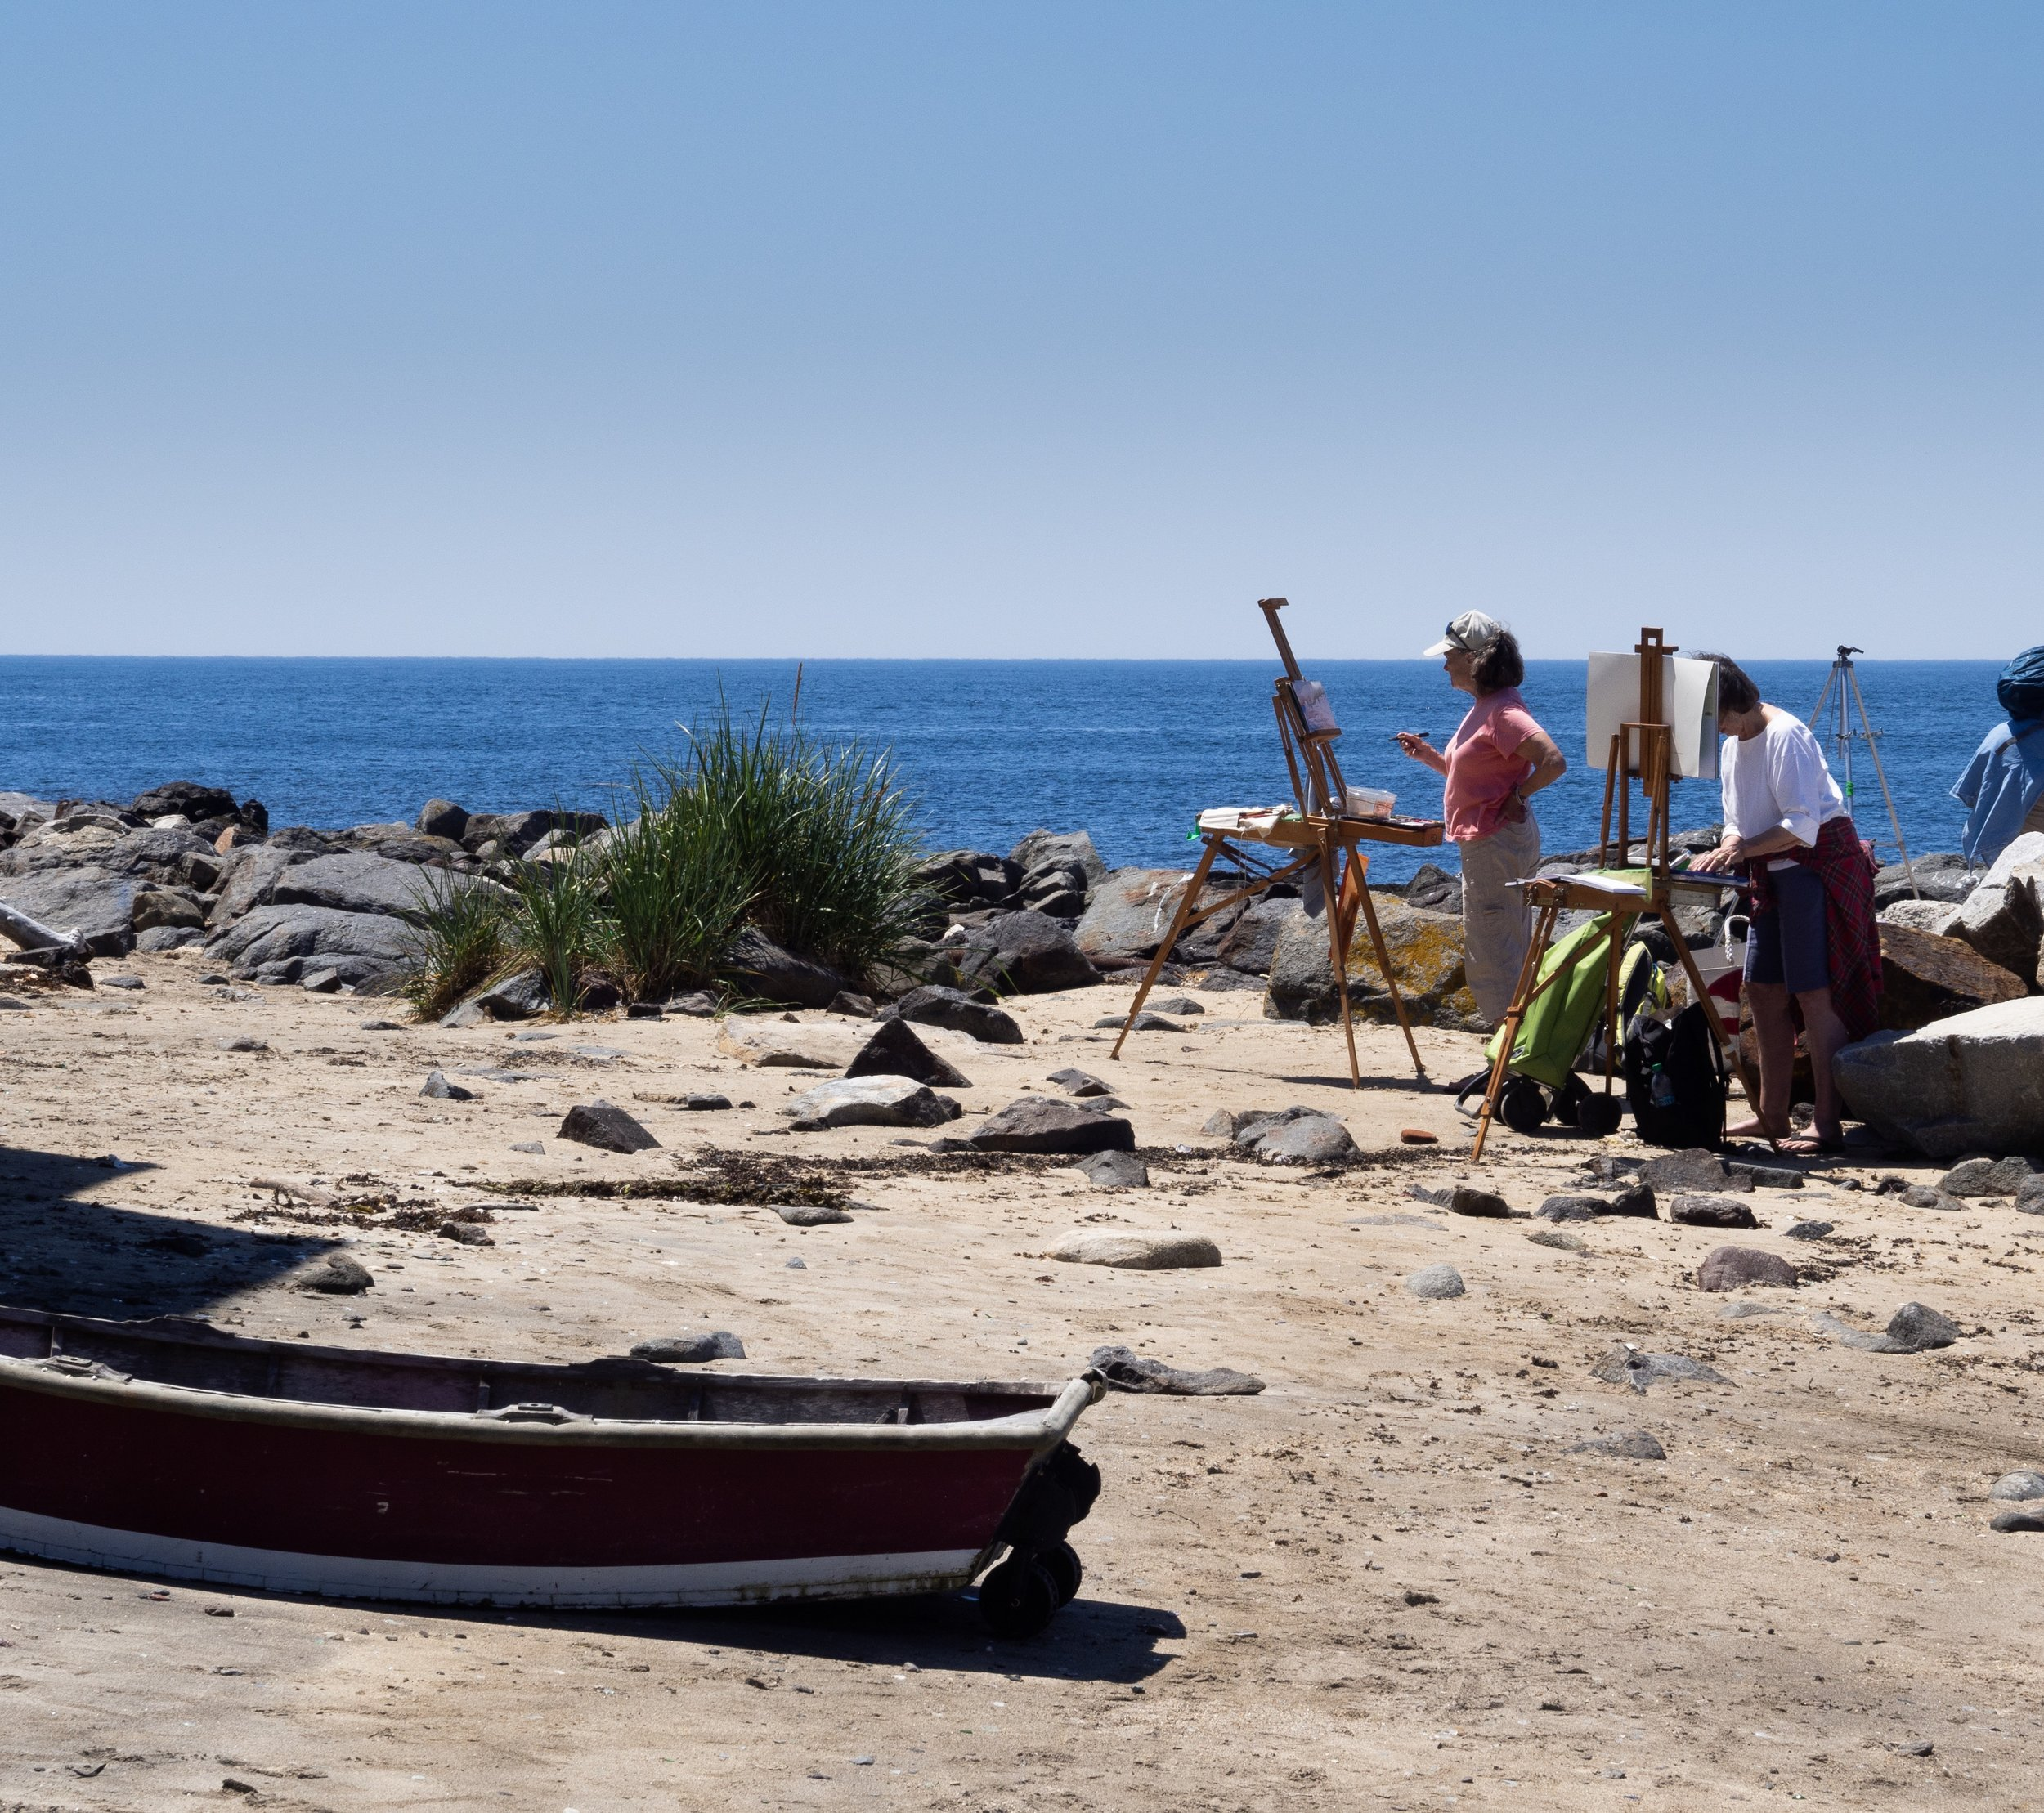 Having a leisurely lunch and watching painter work at Fish Beach on Monhegan Island. Years ago we took a day trip there, then recently an overnight trip. And this past summer two nights. Maybe even longer in the future